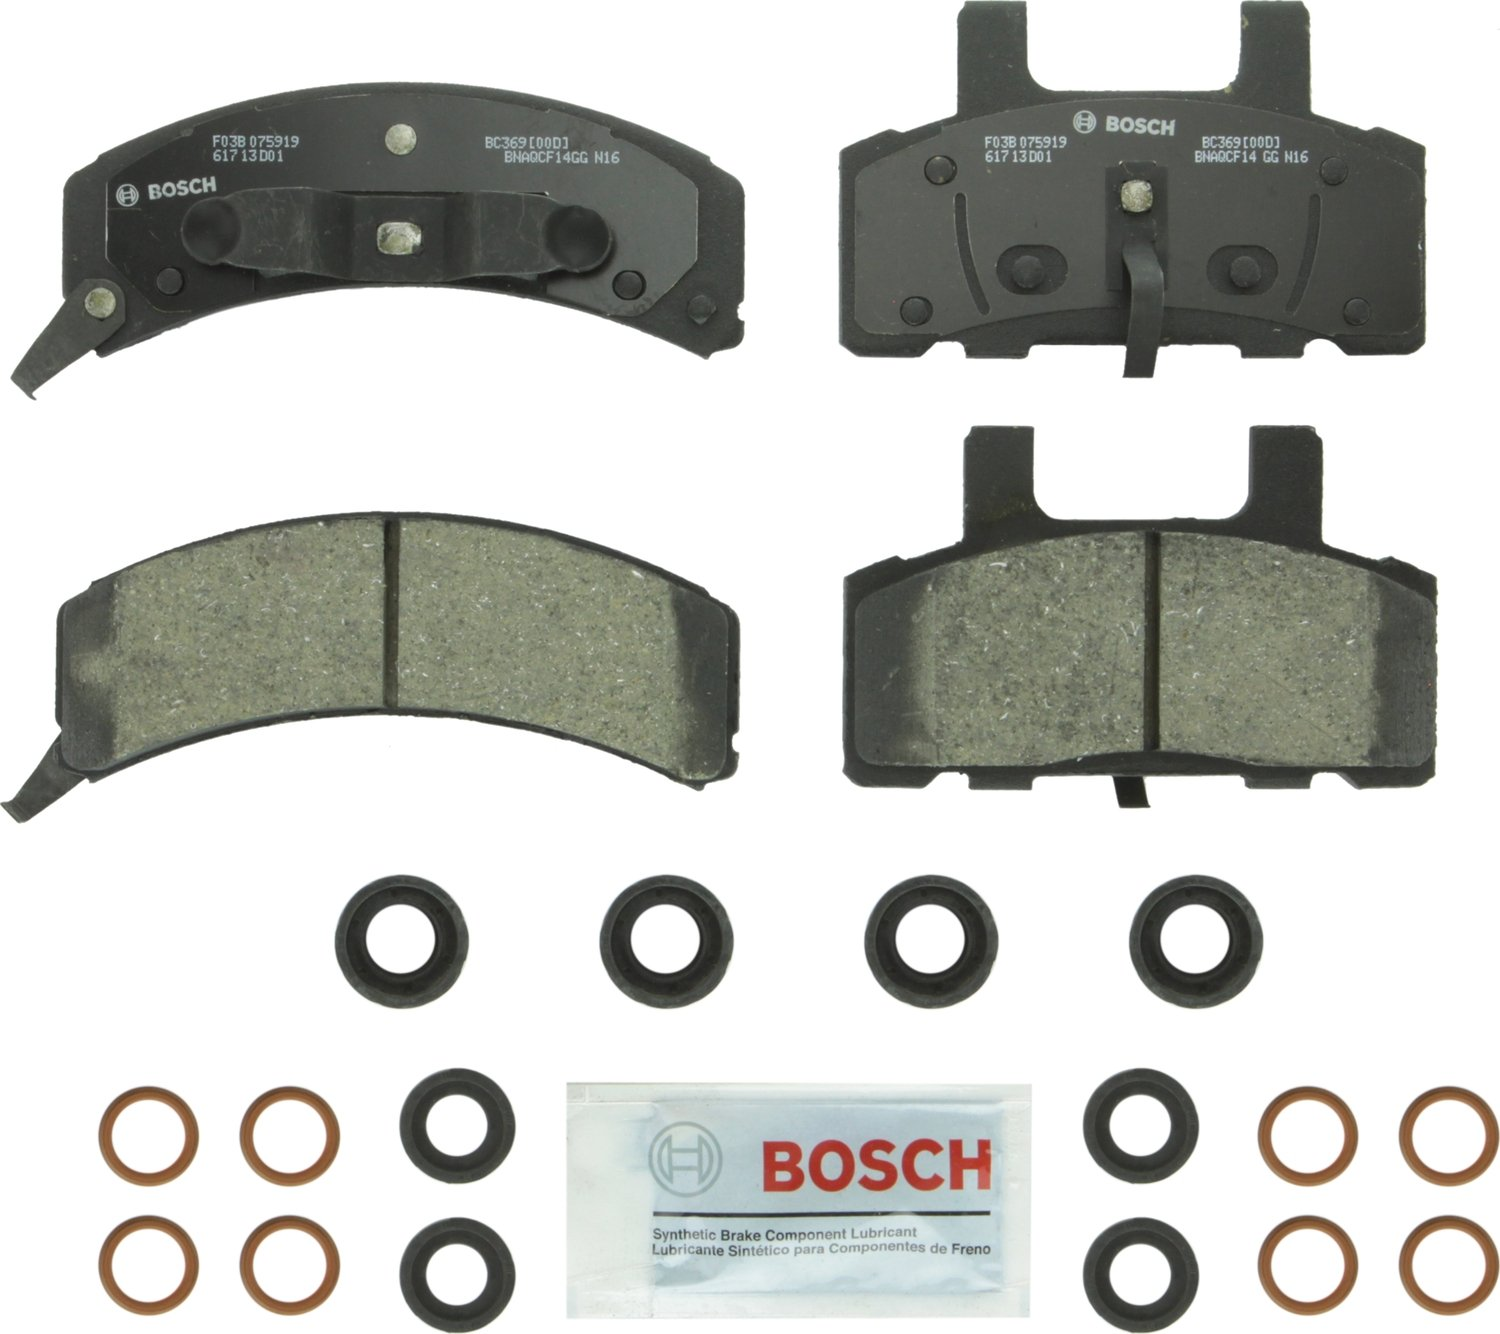 Amazon.com: Bosch BC1451 QuietCast Premium Ceramic Disc Brake Pad Set For: Acura TSX; Honda Accord, Rear: Automotive